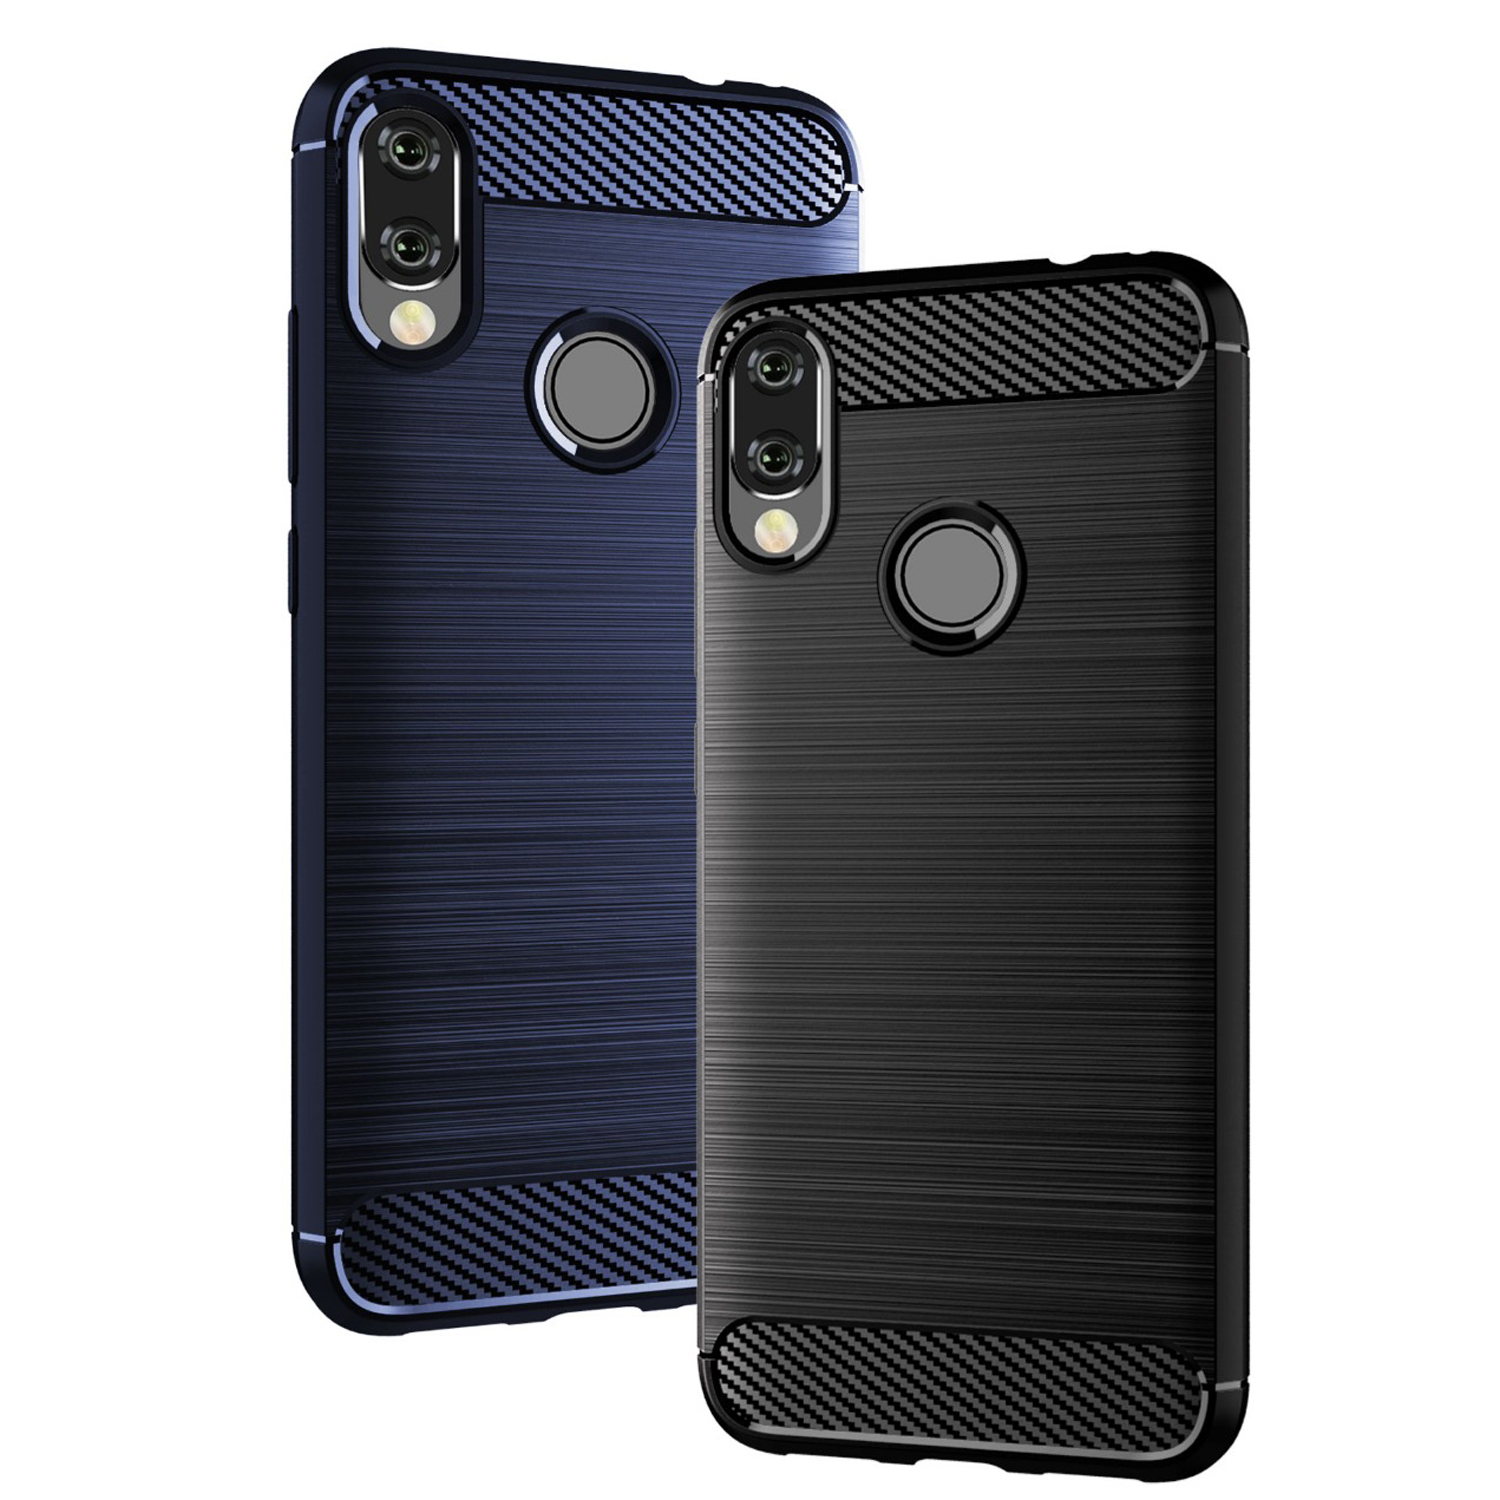 Phone Case For Xiaomi Redmi Note 7 8 6 Pro 5 5A 6A GO 4 4X S2 7A <font><b>Global</b></font> Version TPU Cover Case For Red <font><b>Mi</b></font> 8A A3 Lite <font><b>9</b></font> <font><b>SE</b></font> 9T image